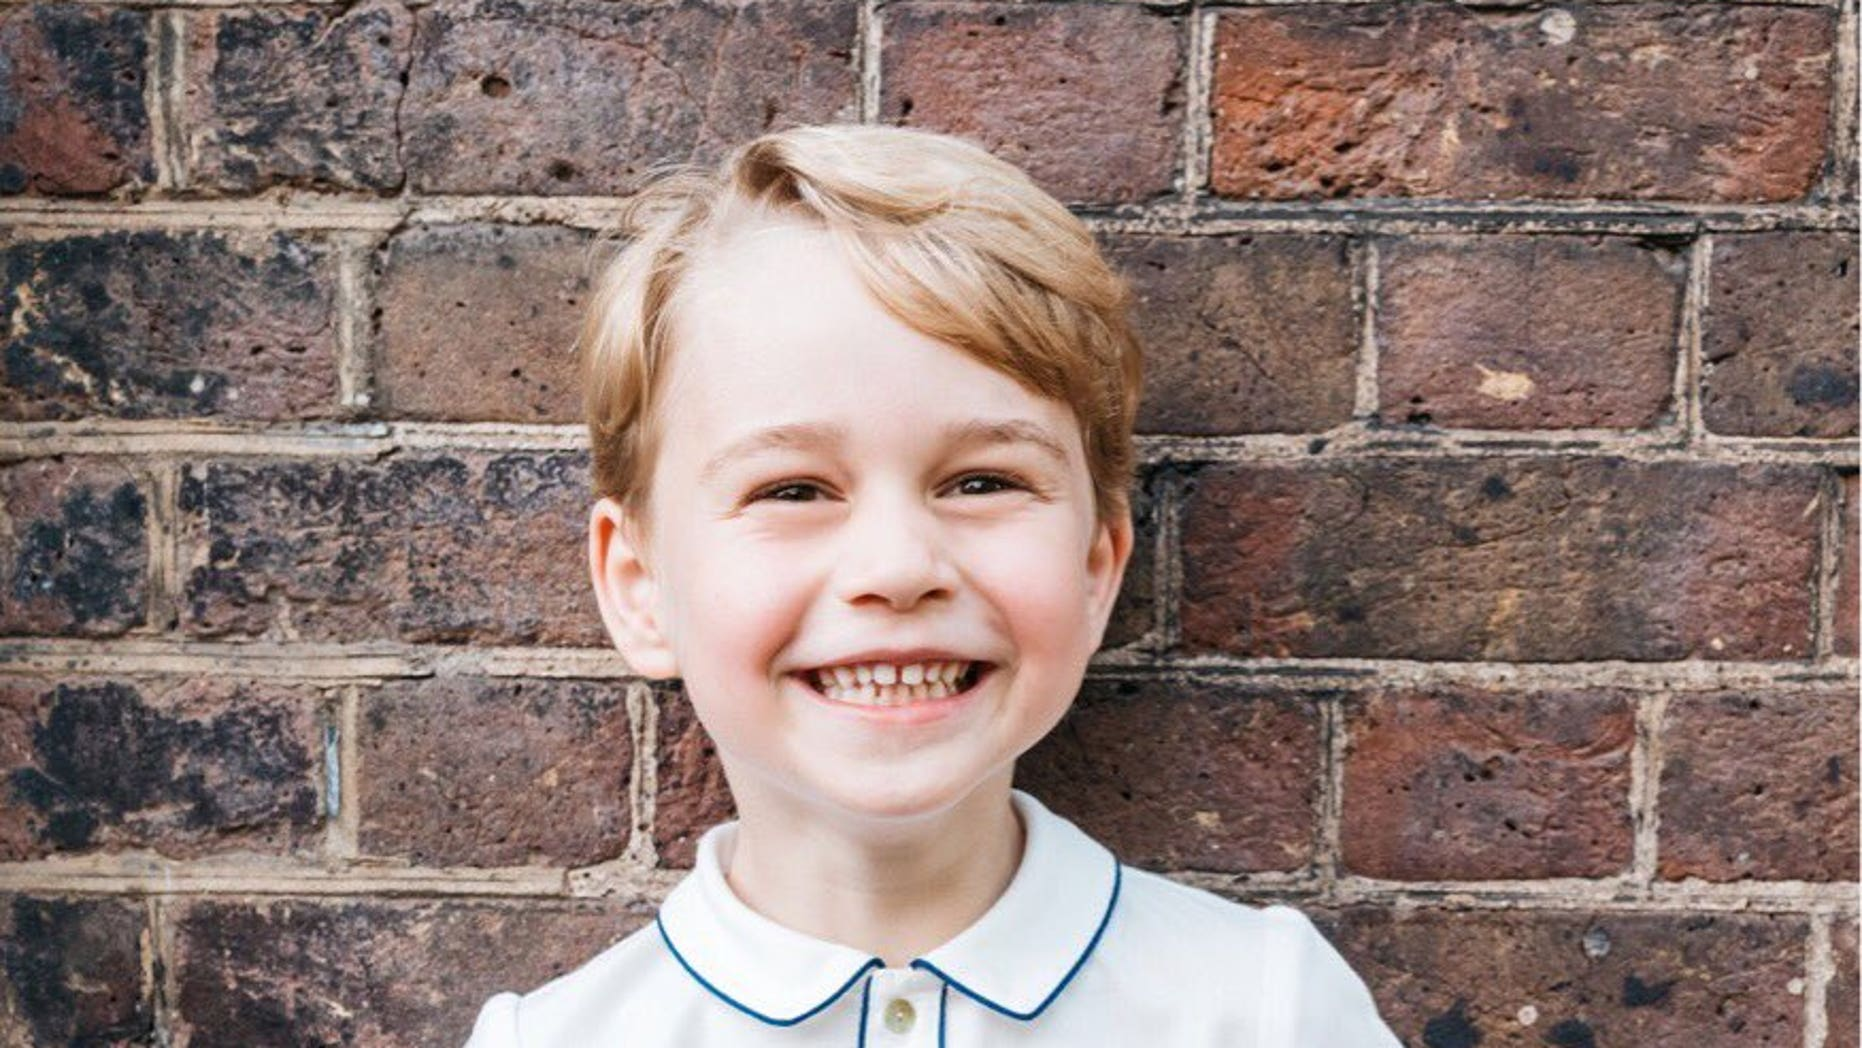 The Royal Family released a cheery photo of Prince George in honor of his fifth birthday.